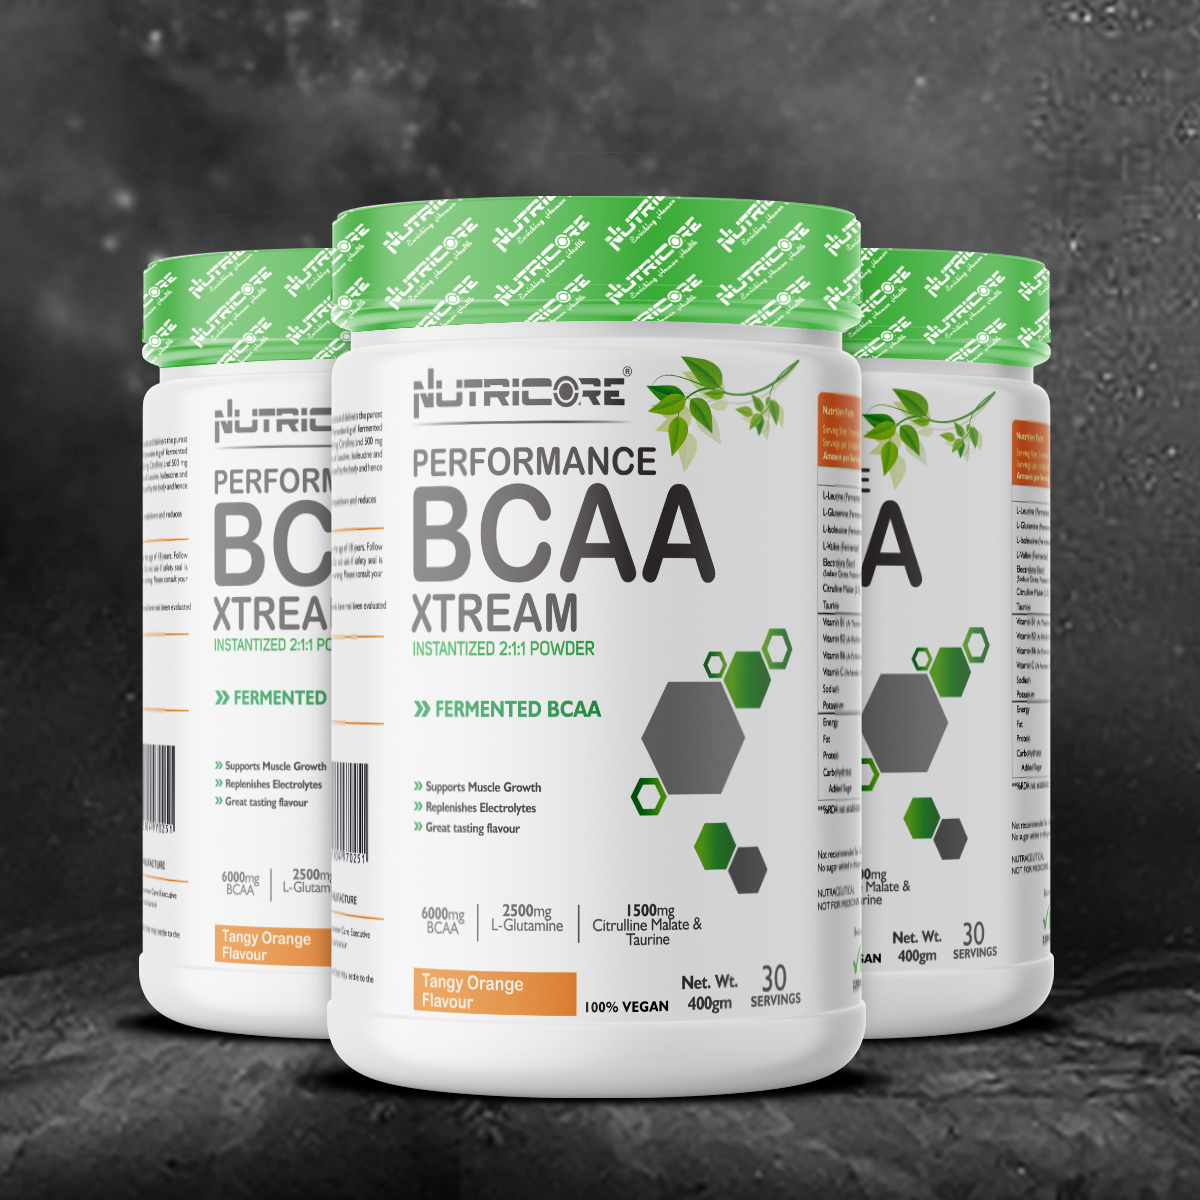 BCAA 7000 Amino Acid INSTANTIZED 2:1:1 POWDER (ORANGE)